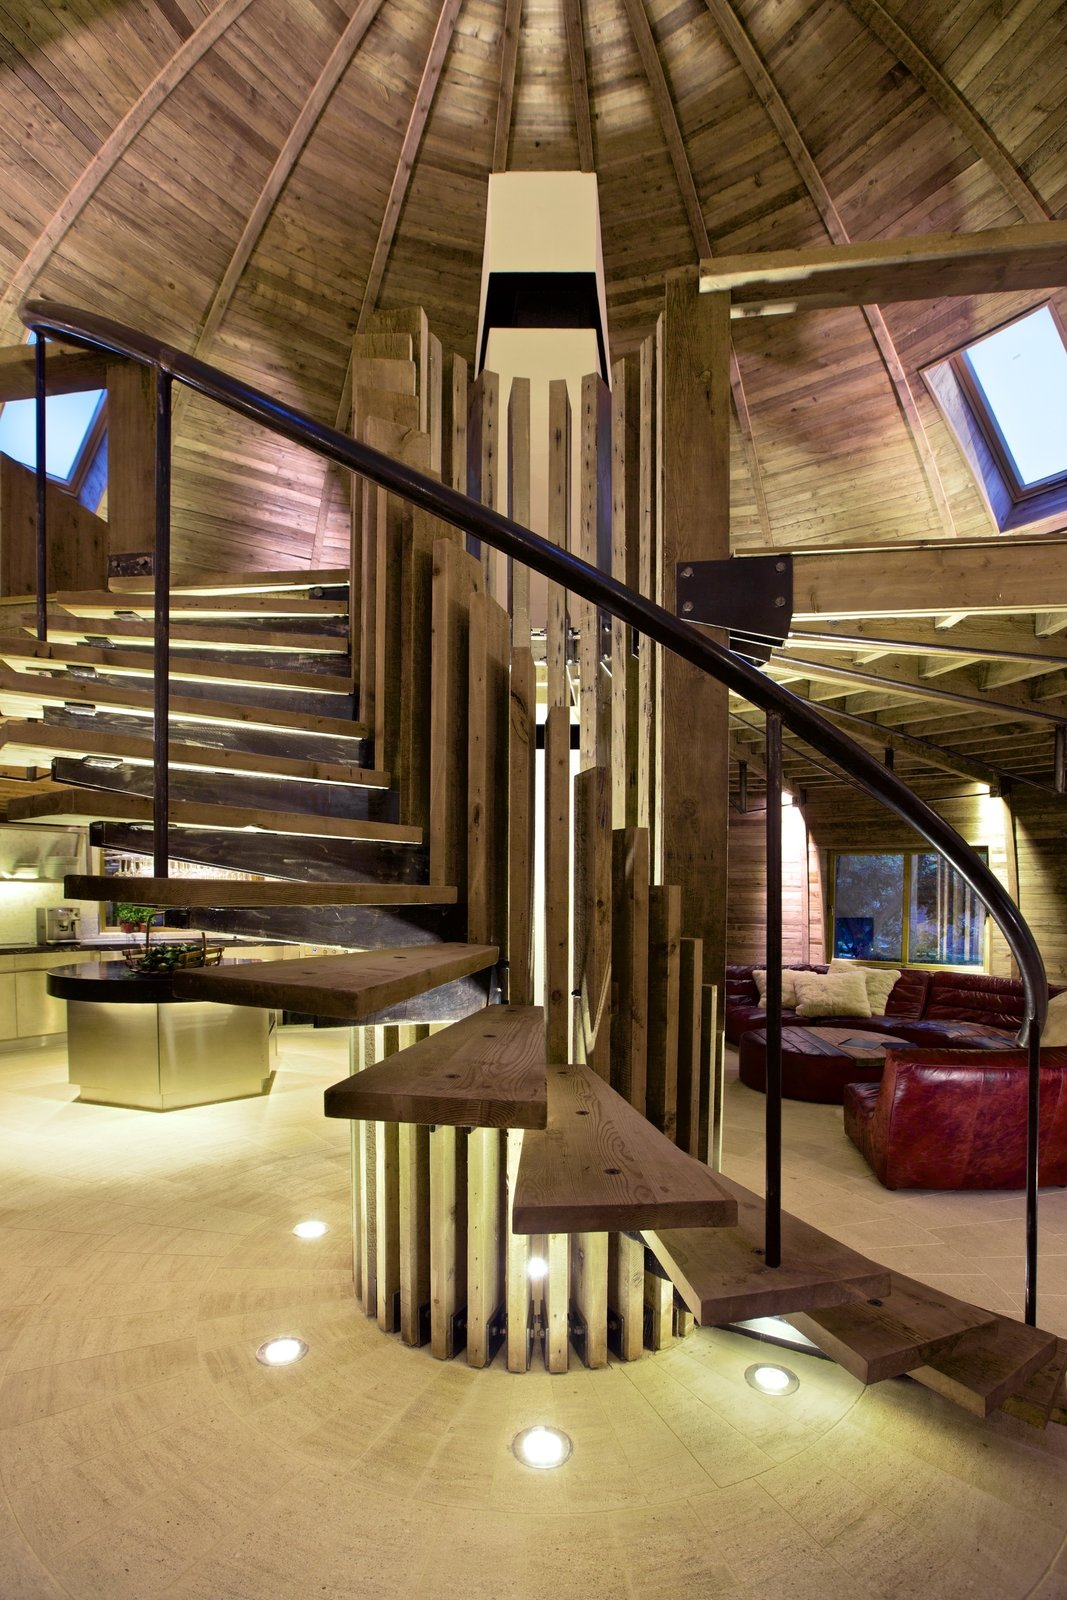 A sweeping spiral staircase occupies the center of the self-supporting dome. Its reclaimed pine treads echo the dome's ceiling and contrast pleasantly with the raw steel railing. PAK LED lights installed in the floor add an extra touch of drama to the home's showpiece.